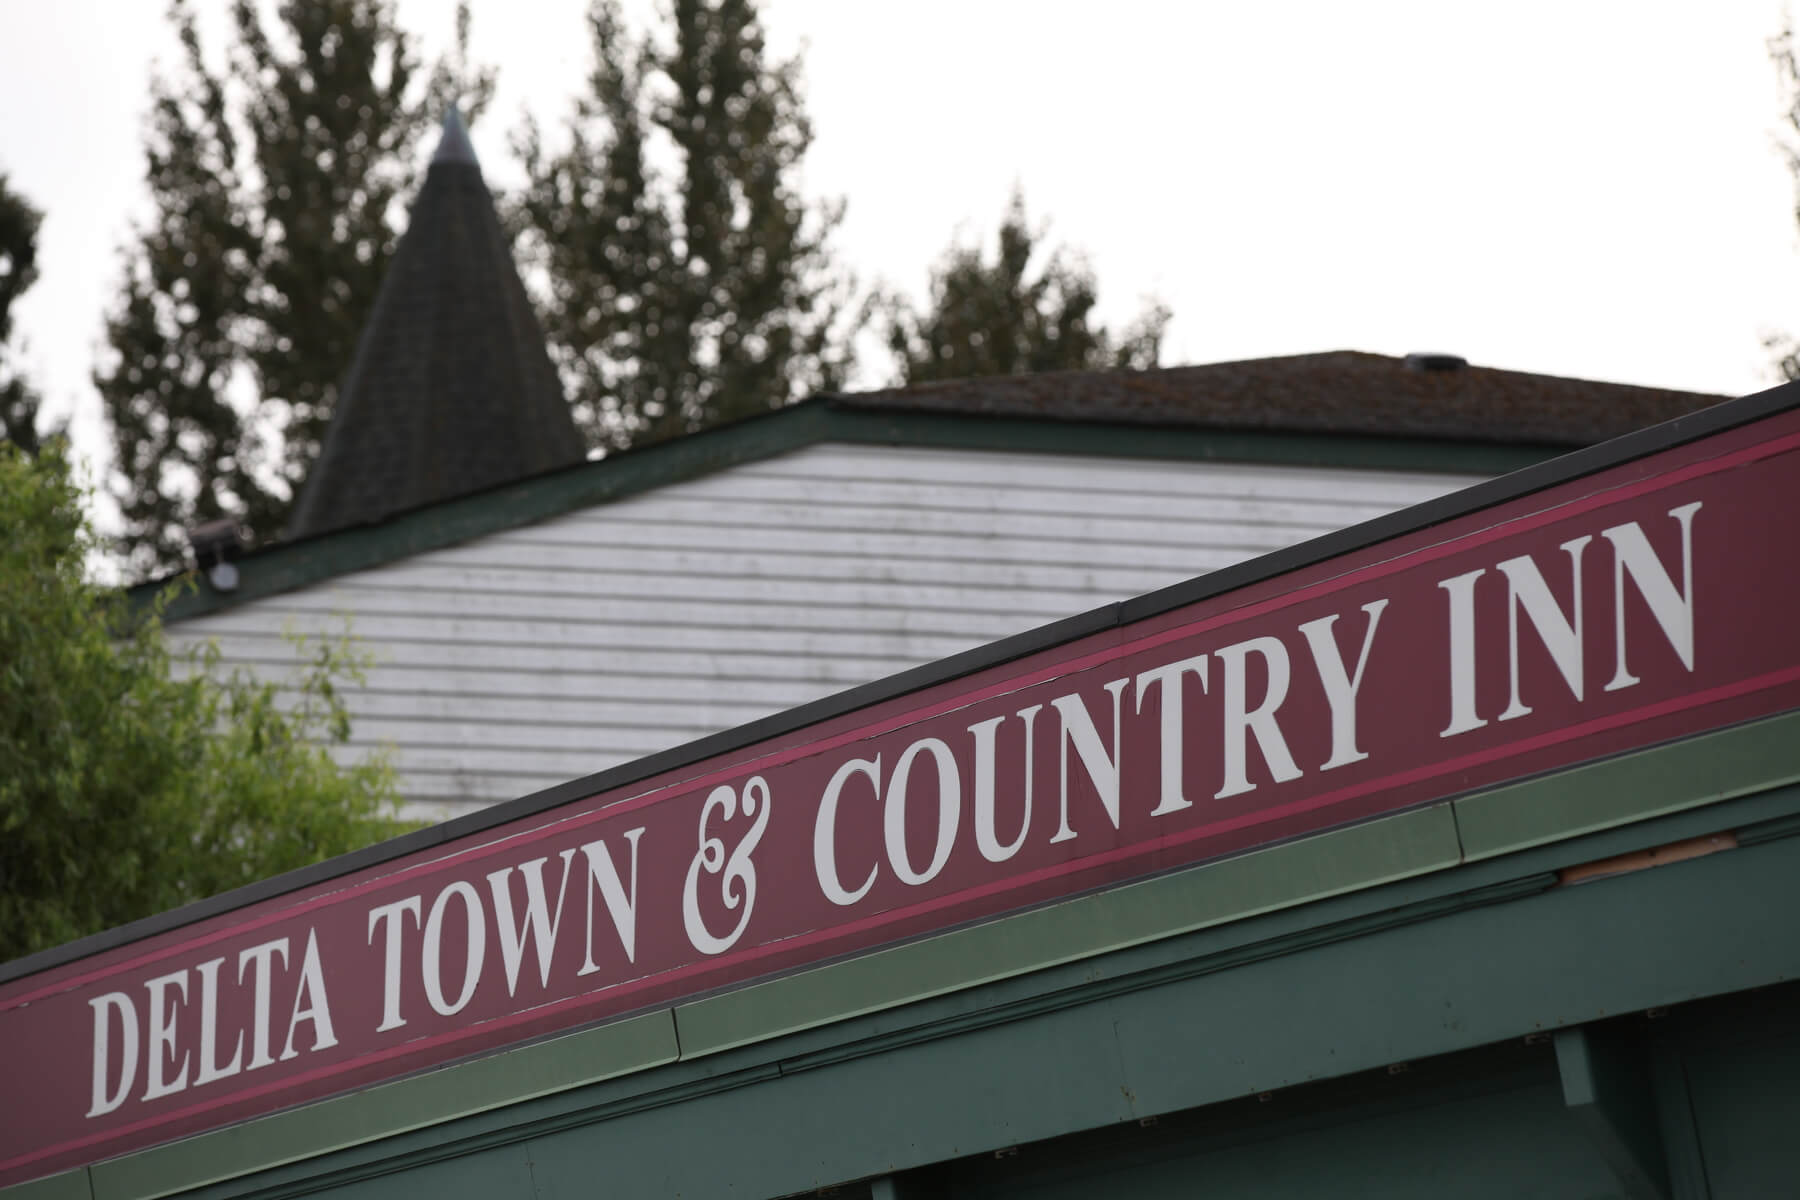 Image shows the Delta Town & Country Inn signage located above the front entrance to the hotel as seen from the car park.